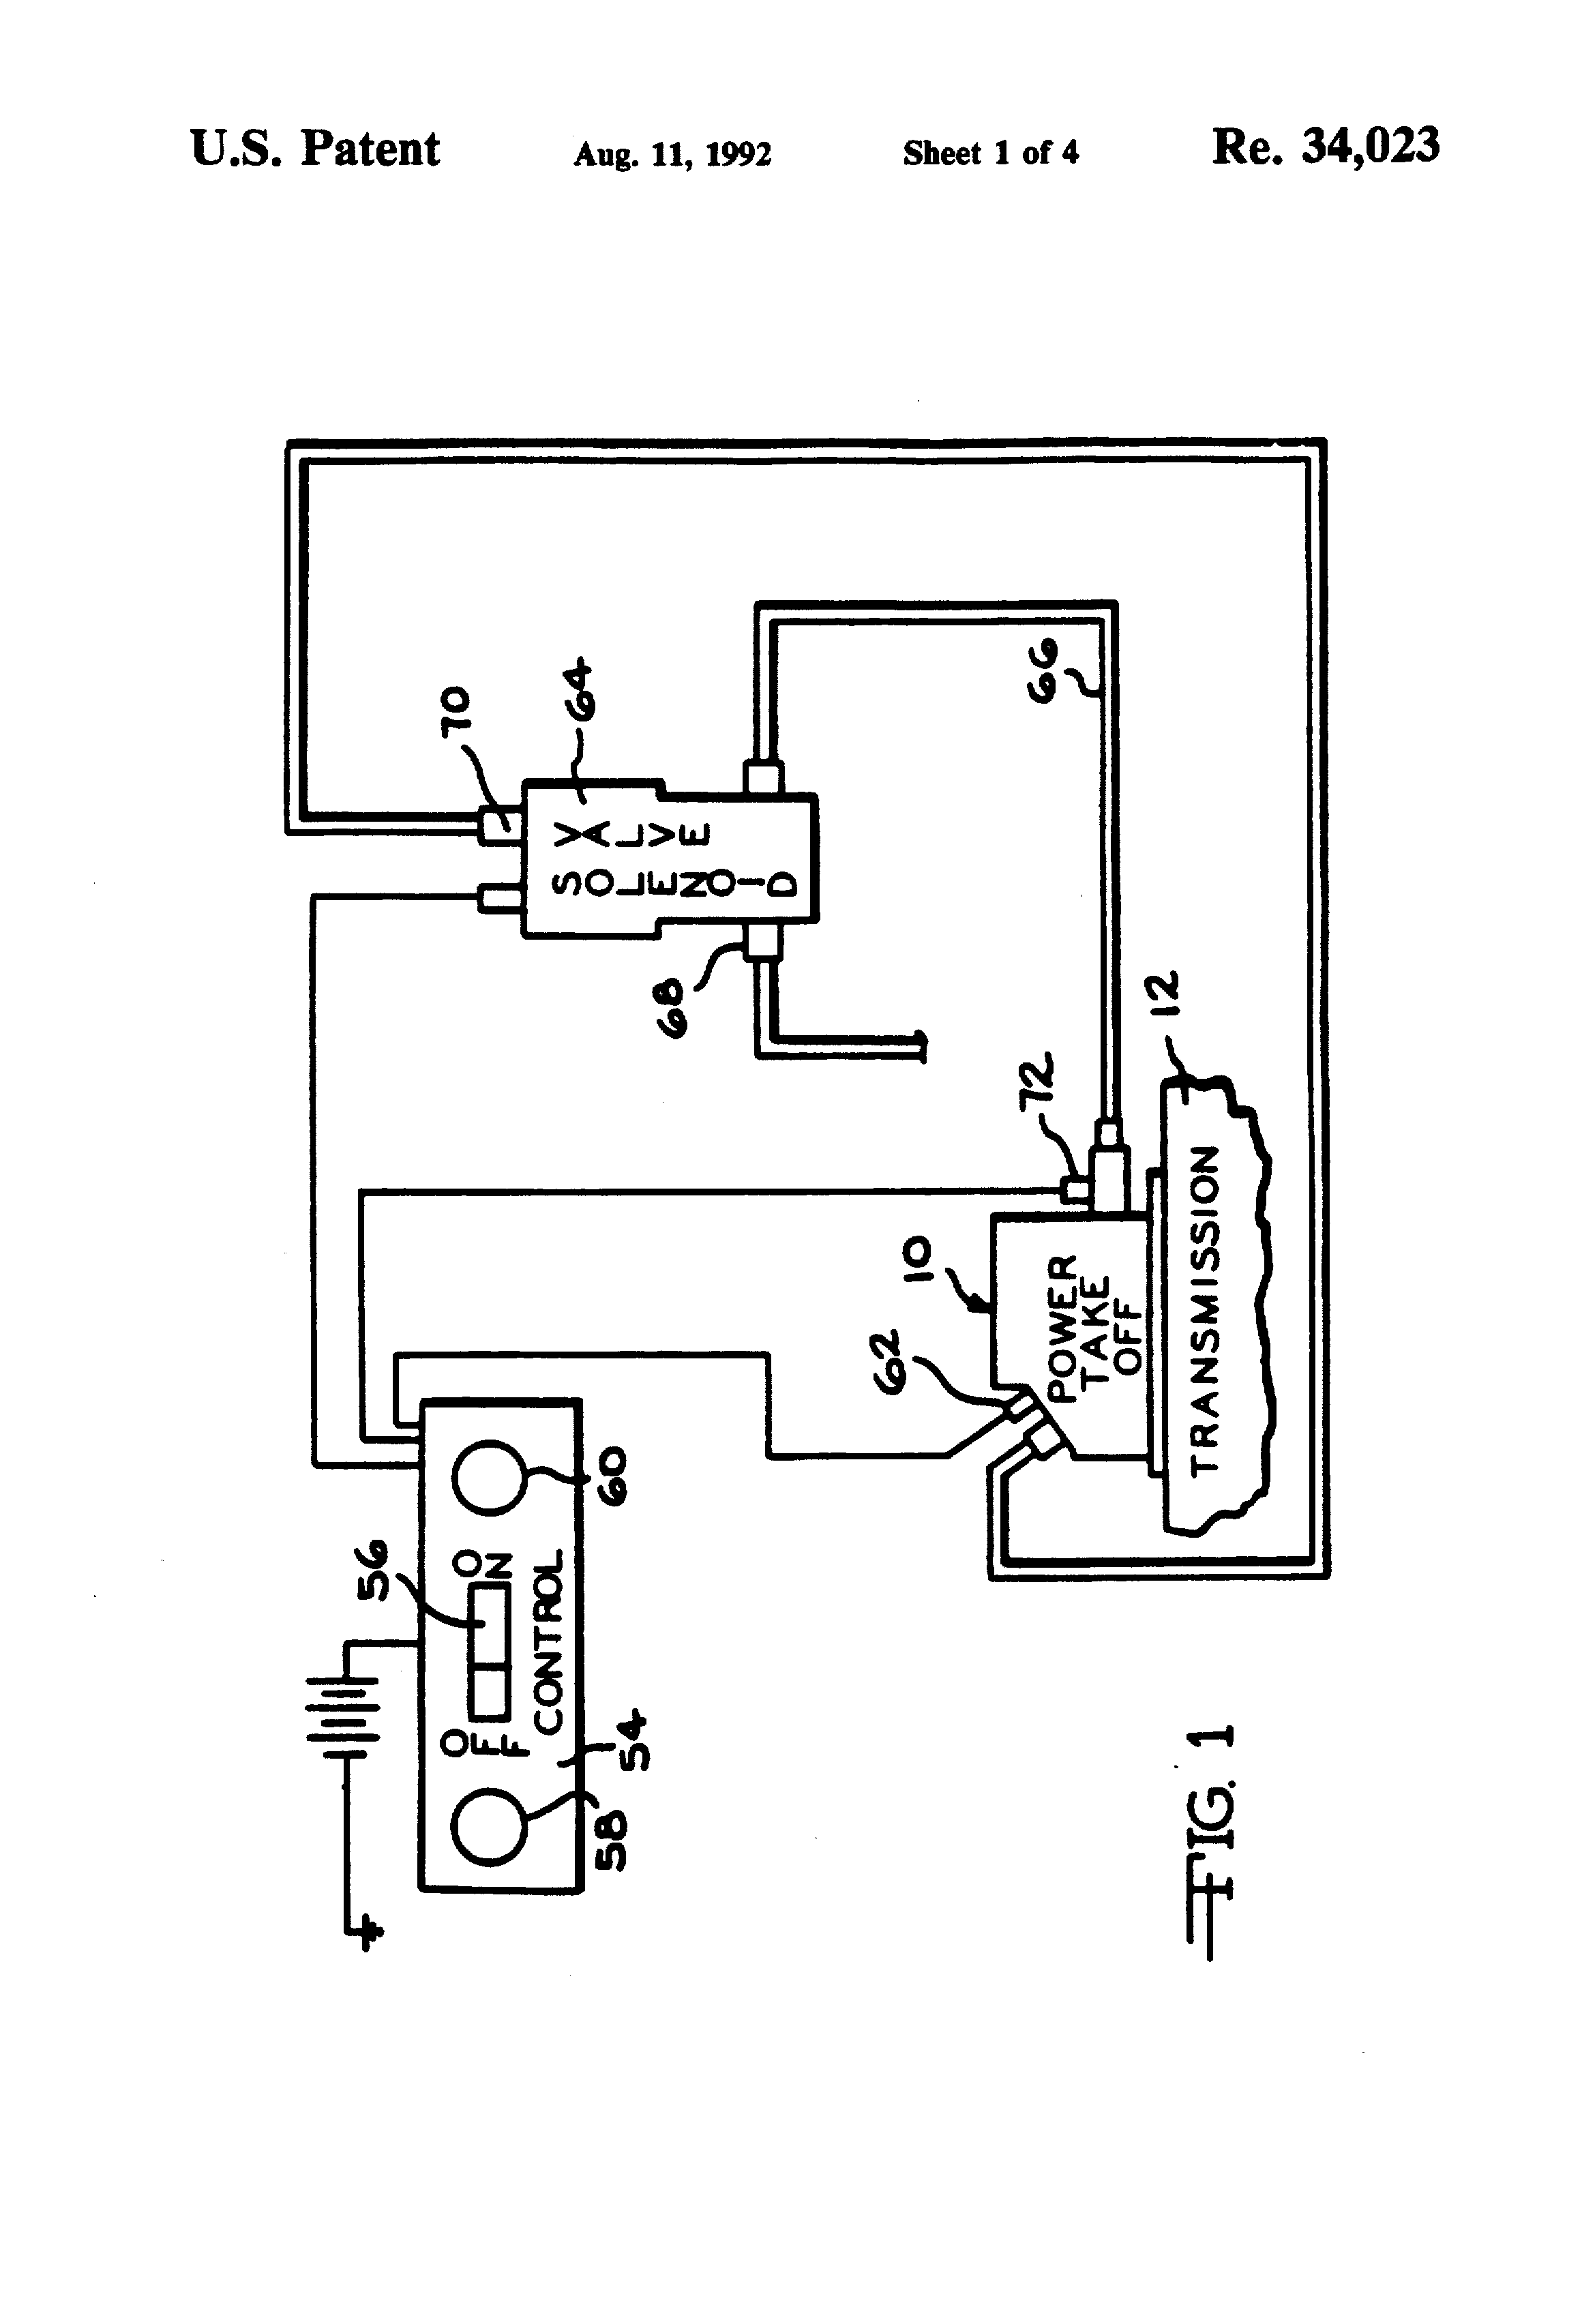 USRE34023 2 muncie pto wiring diagram muncie pto valve \u2022 wiring diagrams j muncie pto wiring diagram at alyssarenee.co